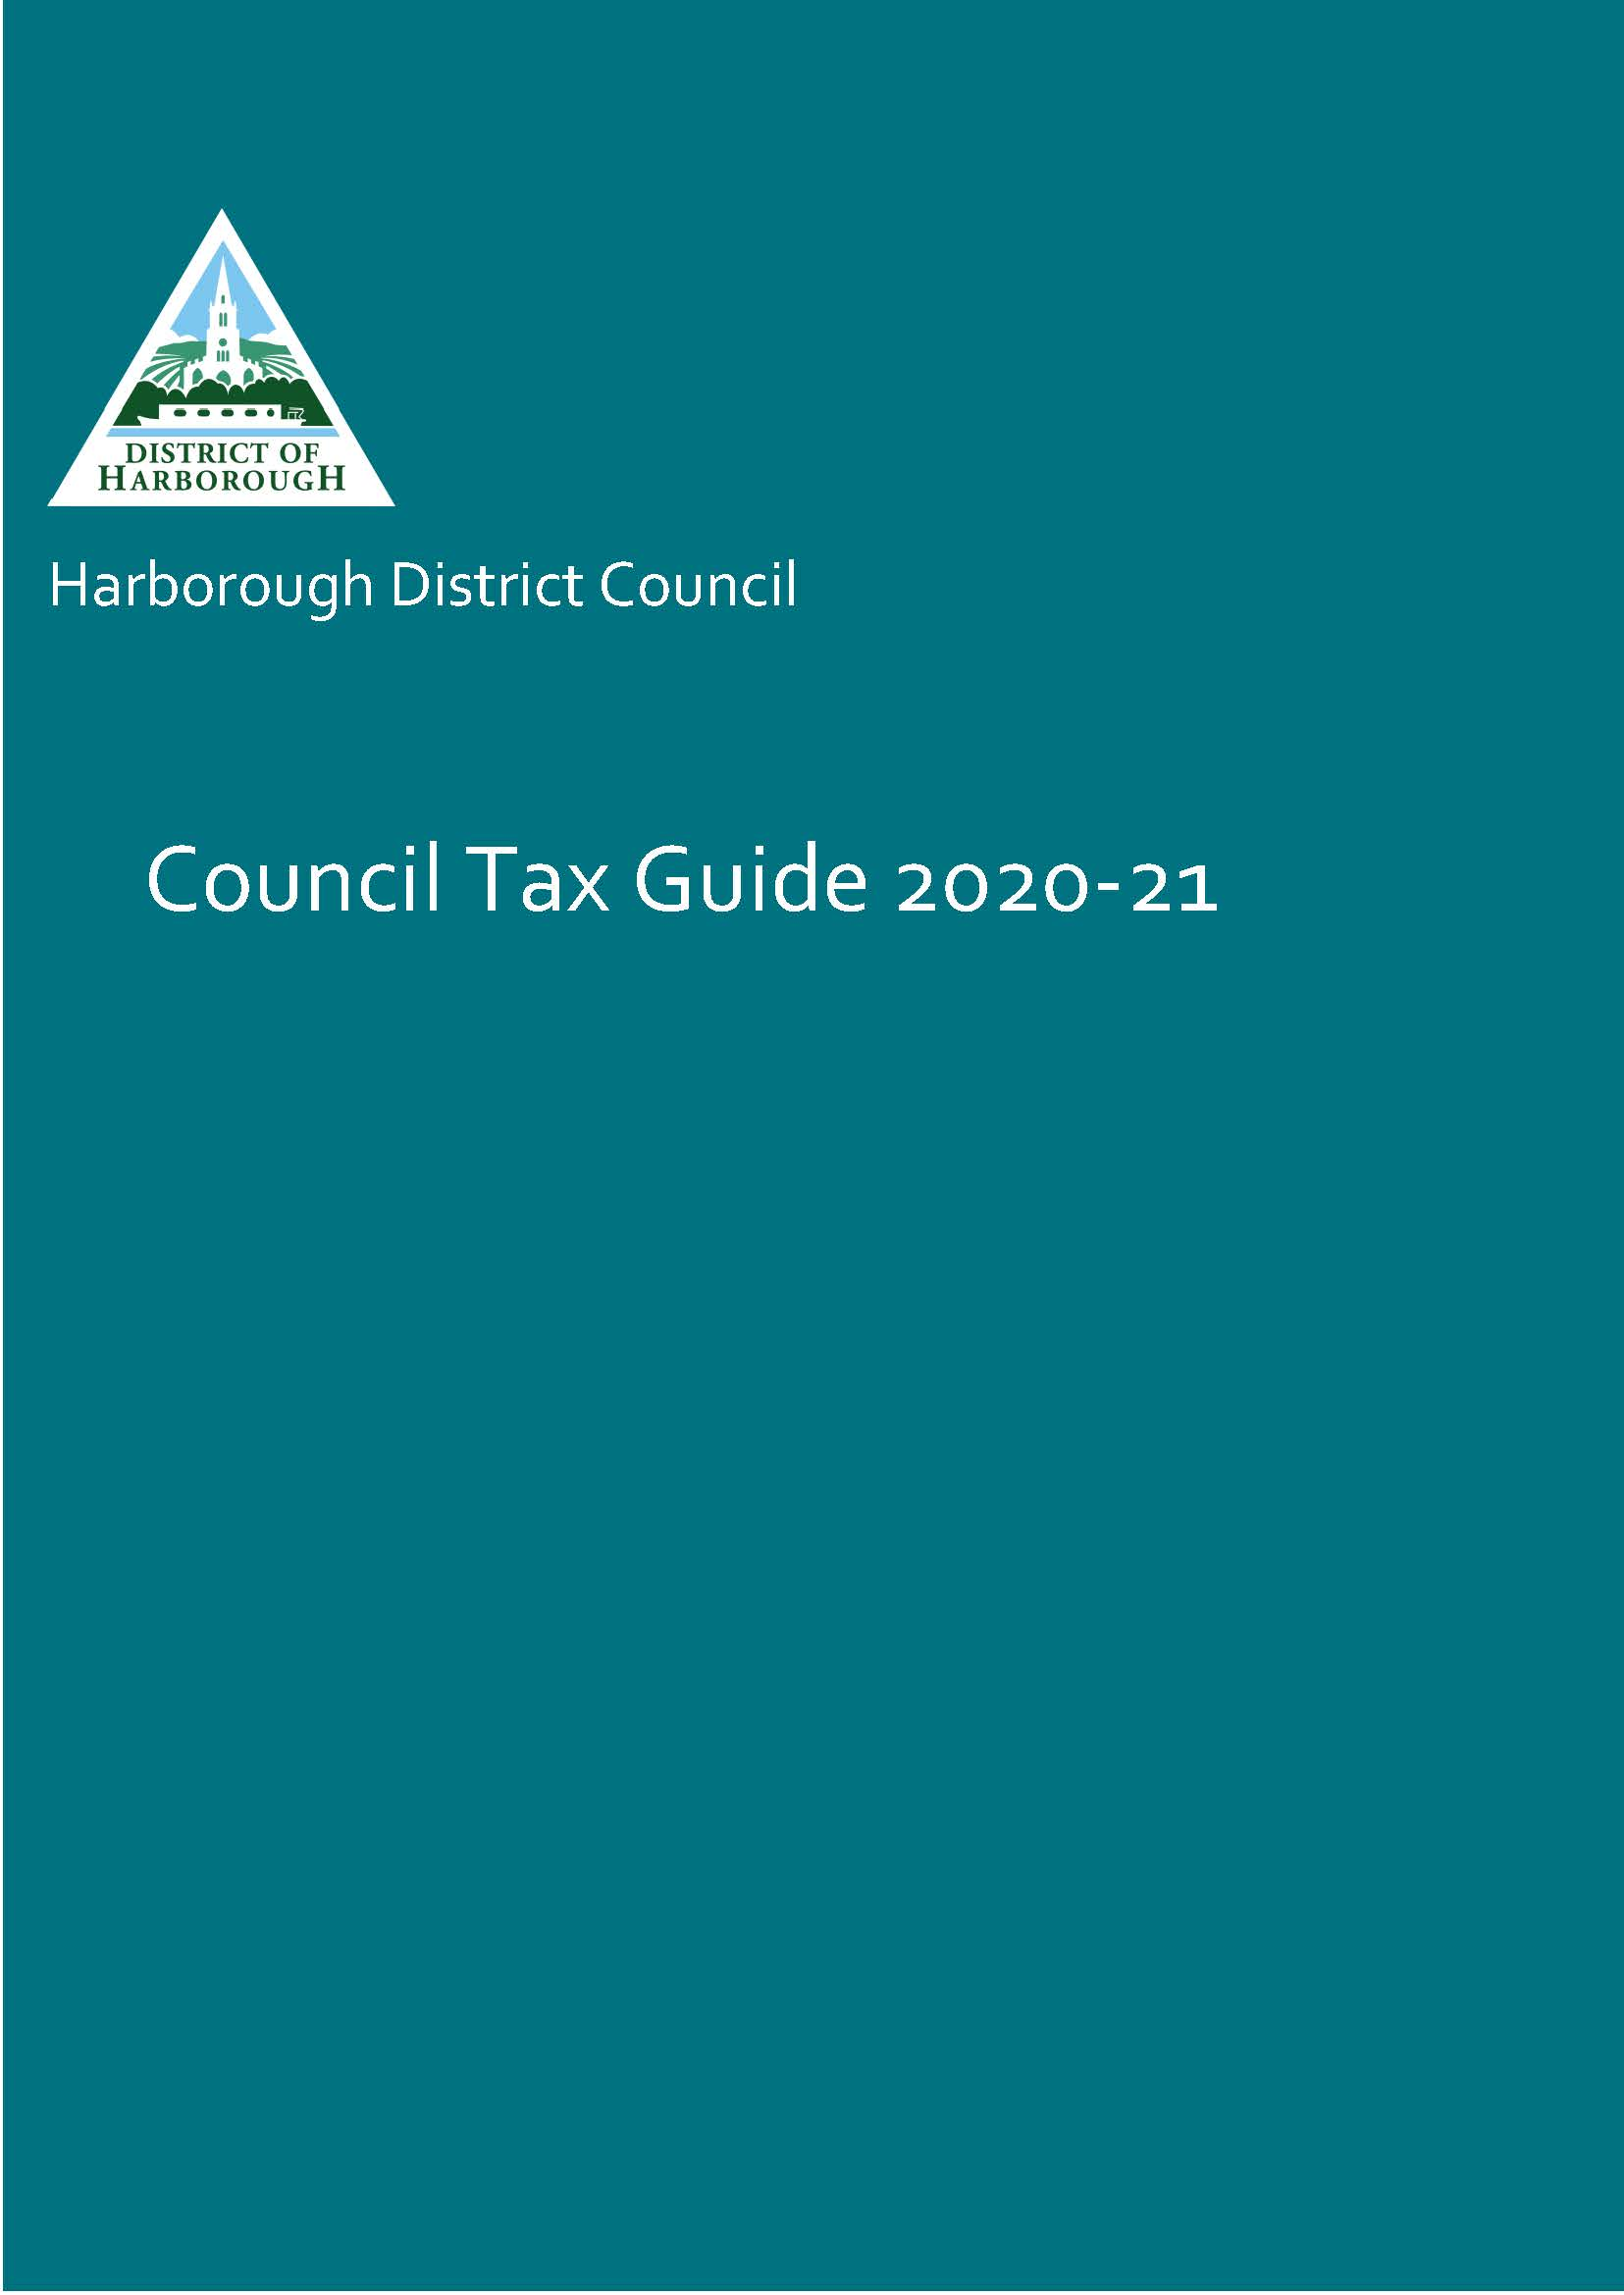 Hdc council tax leaflet